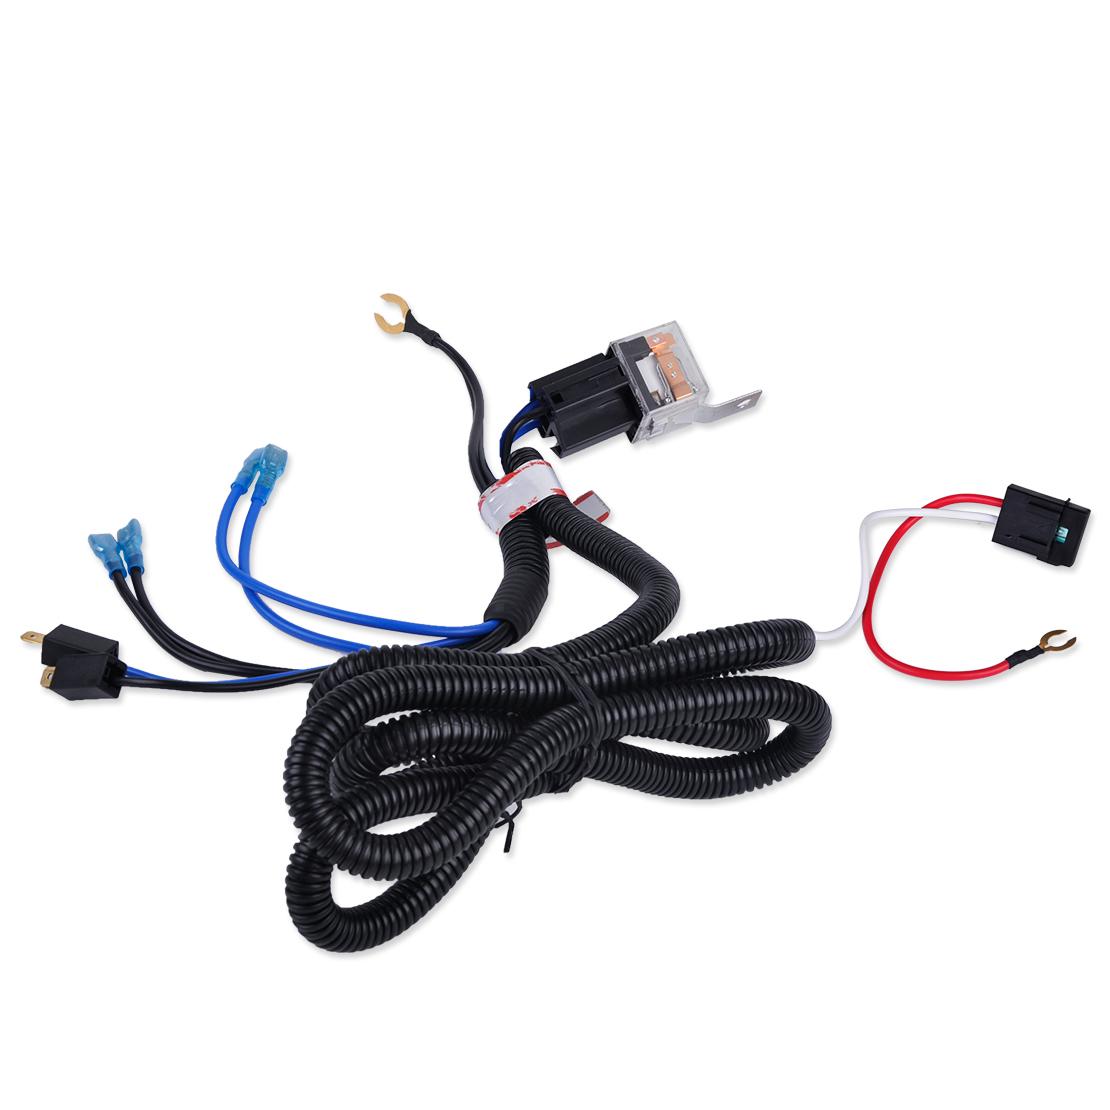 small resolution of beler new 12v wiring harness relay kit fit for car auto truck grille mount blast tone horn for vw audi ford bmw chevrolet